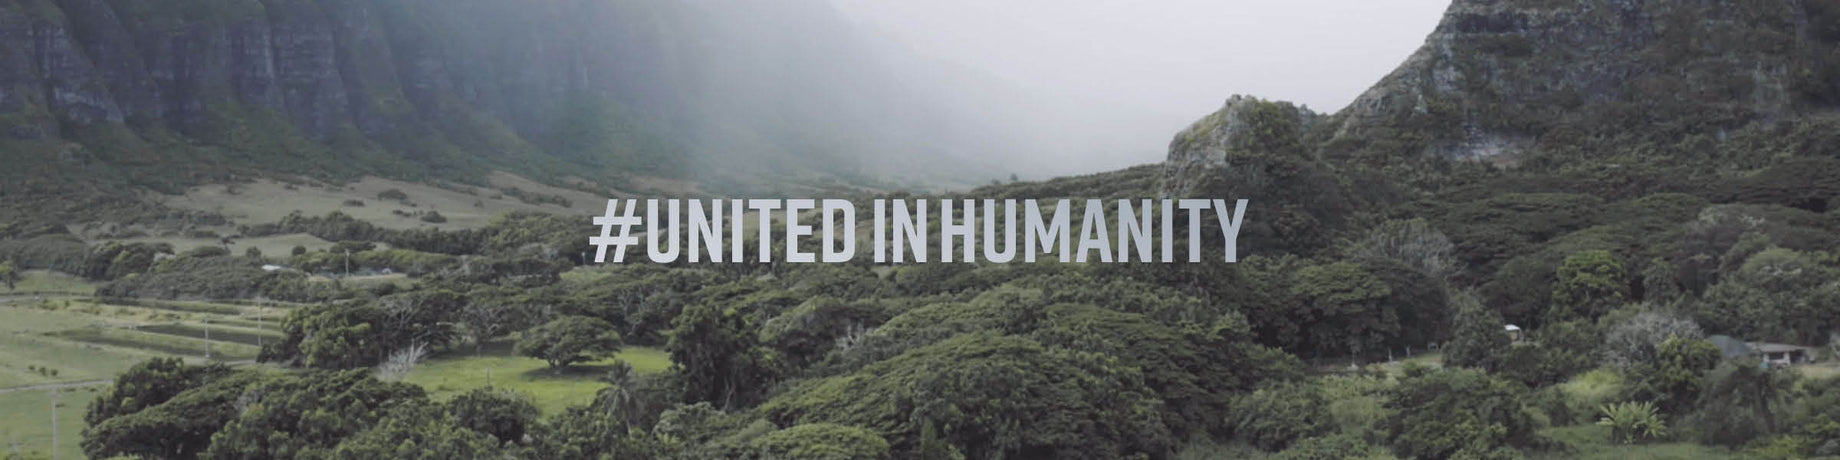 United In Humanity Project // Manresa